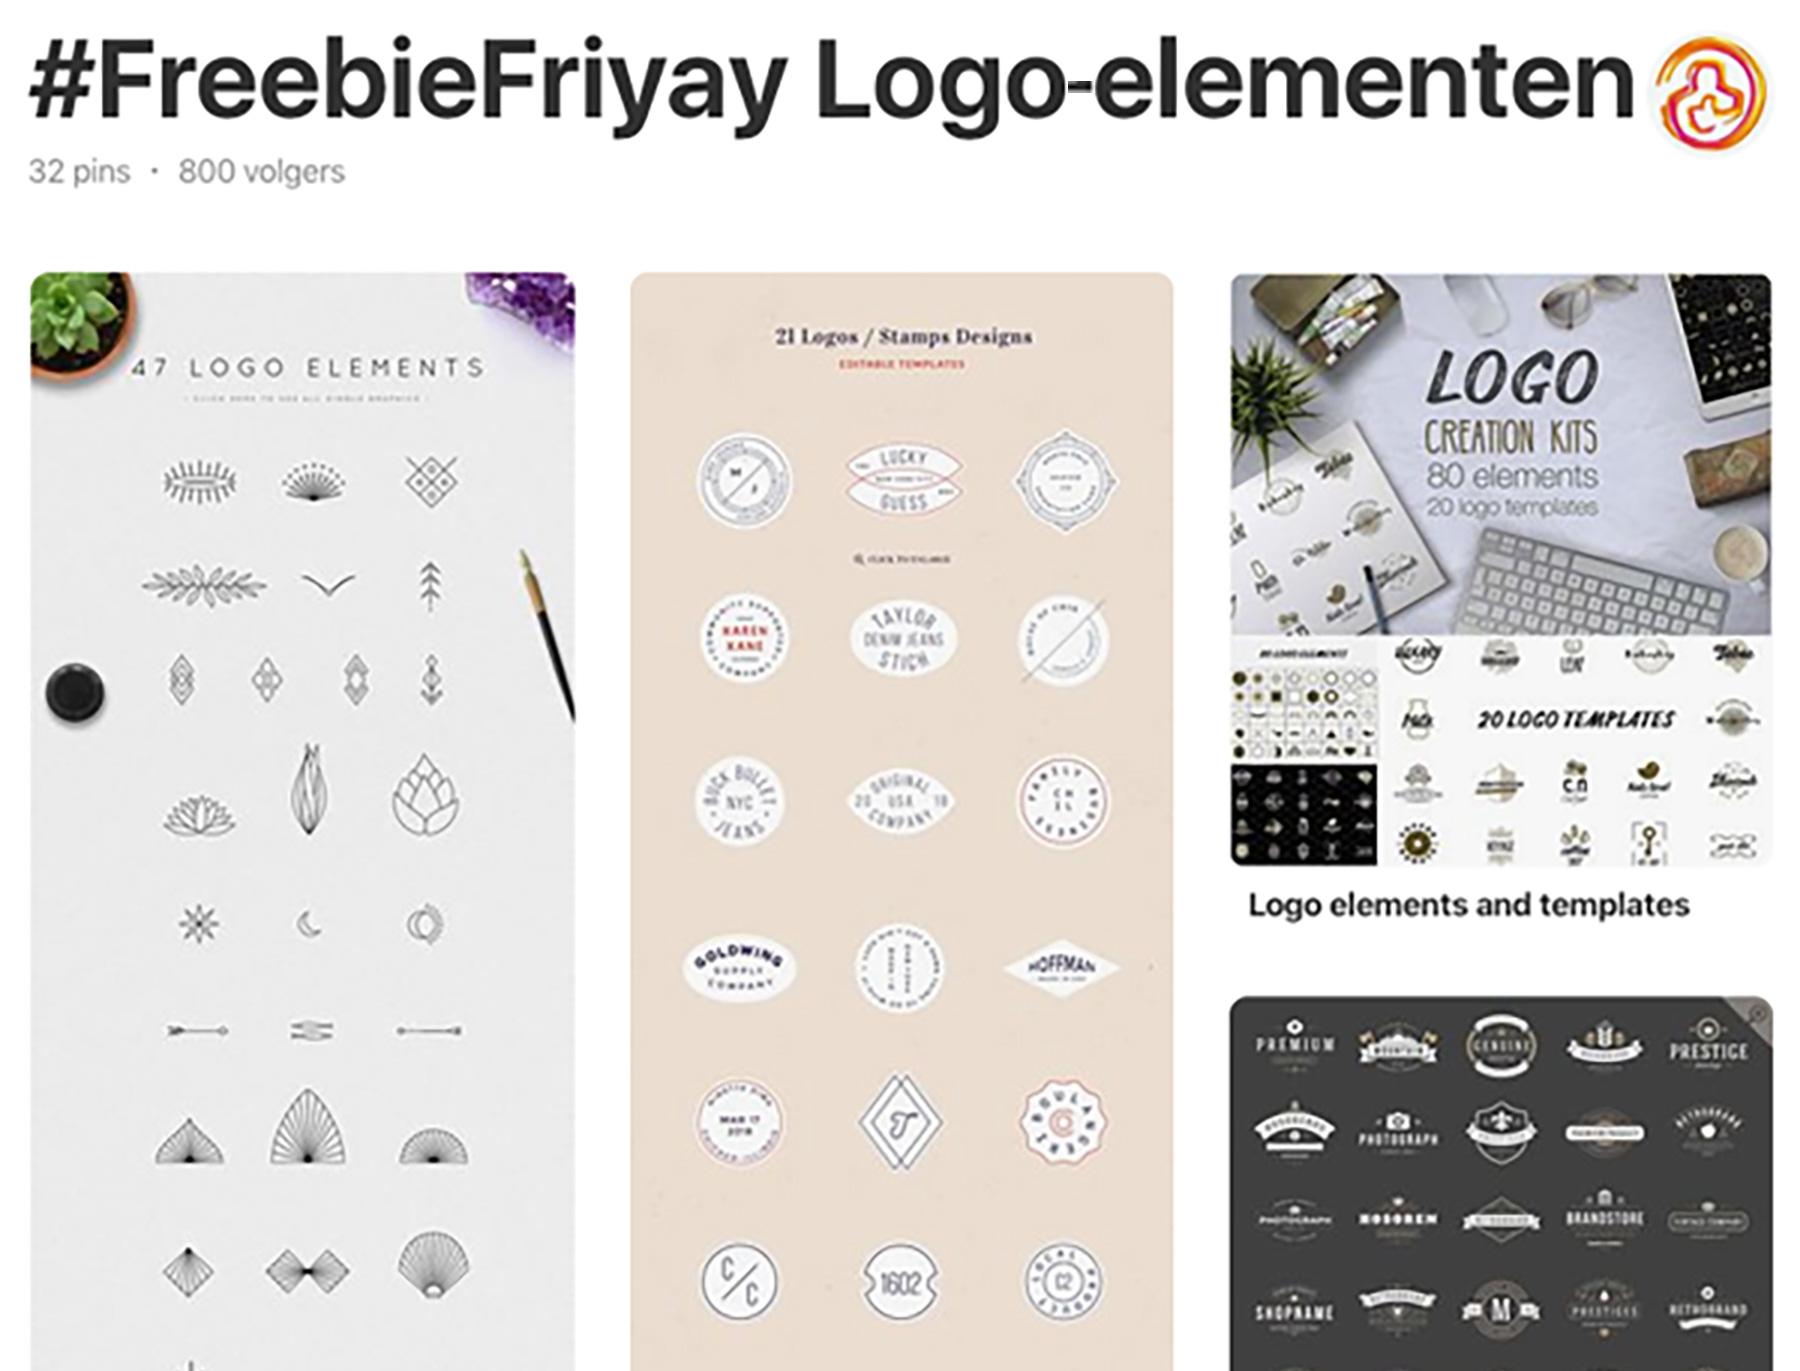 freebiefriyay-week-25 pinterest-logo-elementen